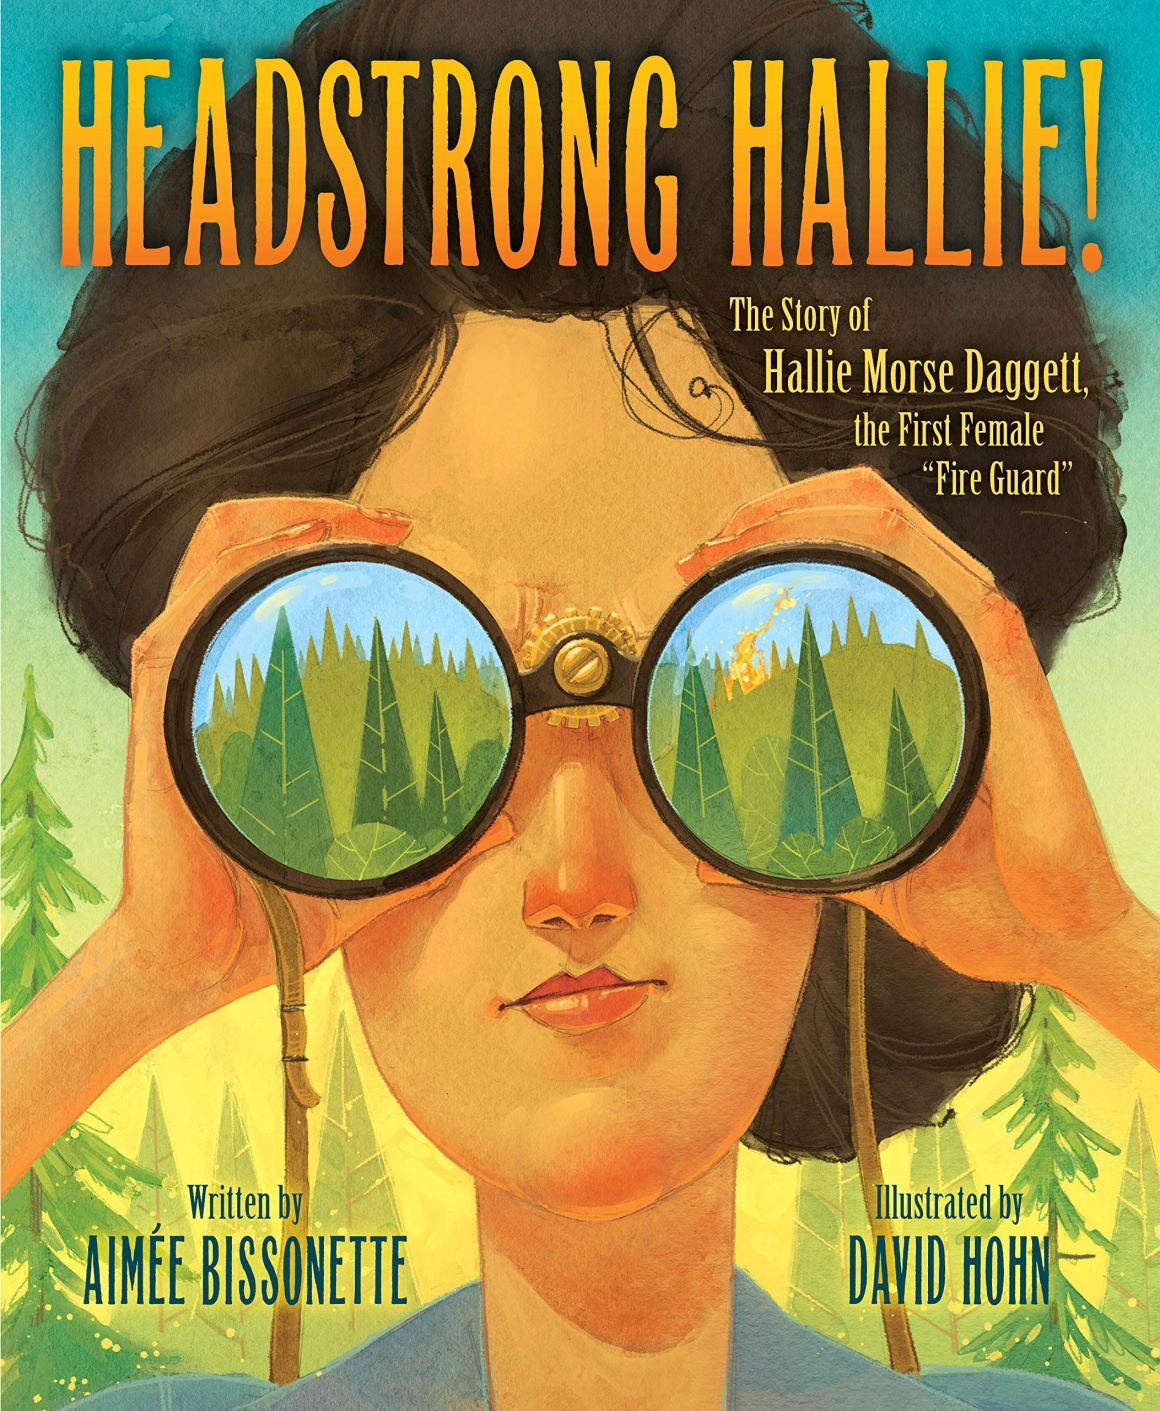 Headstrong Hallie, The Story of Hallie Morse Dagget